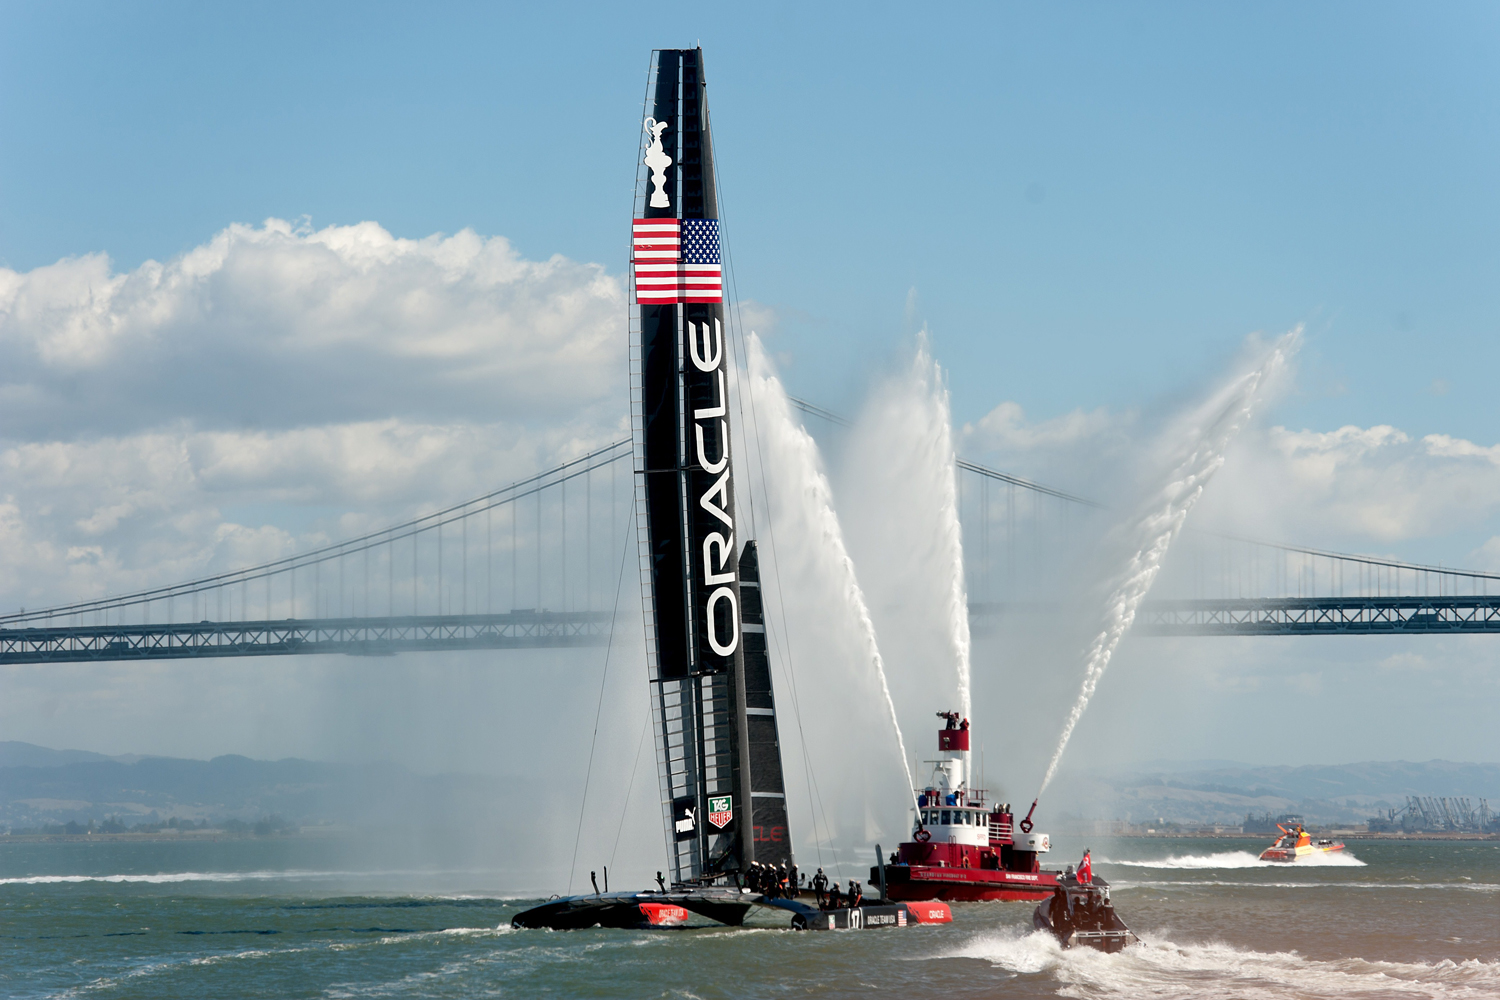 Sept. 25, 2013. A fireboat sprays water as Oracle Team USA celebrates its victory over Emirates Team New Zealand in the 34th America's Cup.